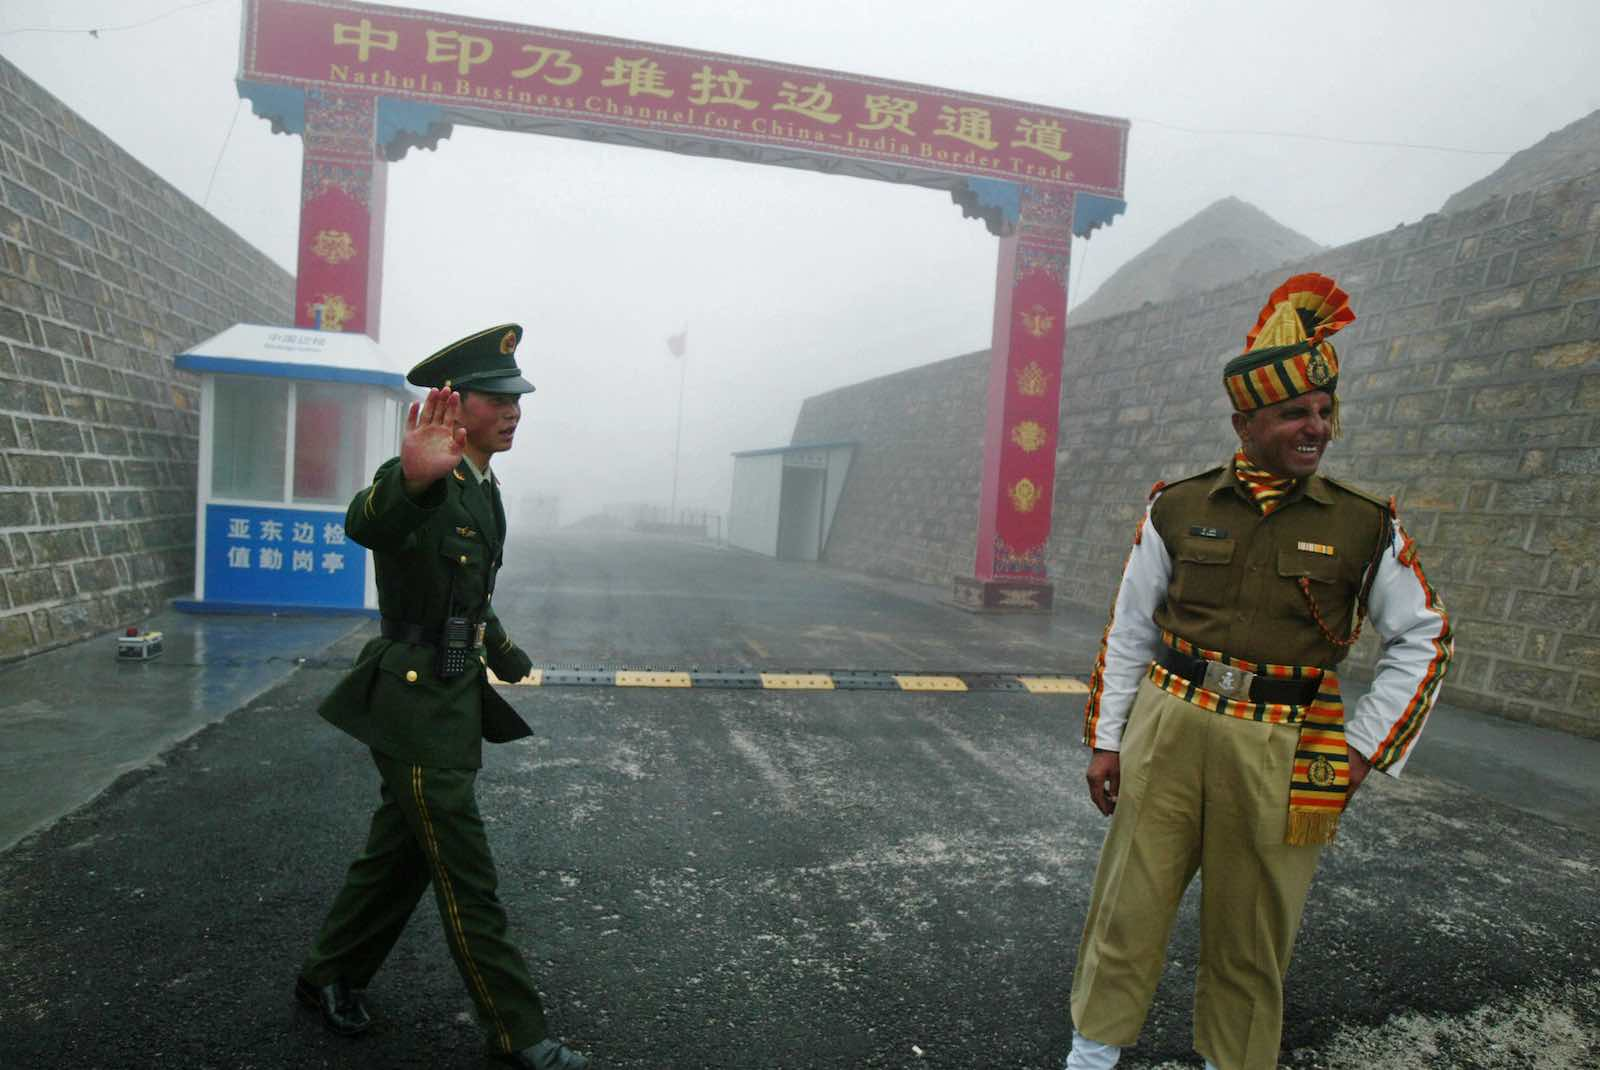 Nathu La border crossing between India and China (Diptendu Dutta/AFP via Getty Images)